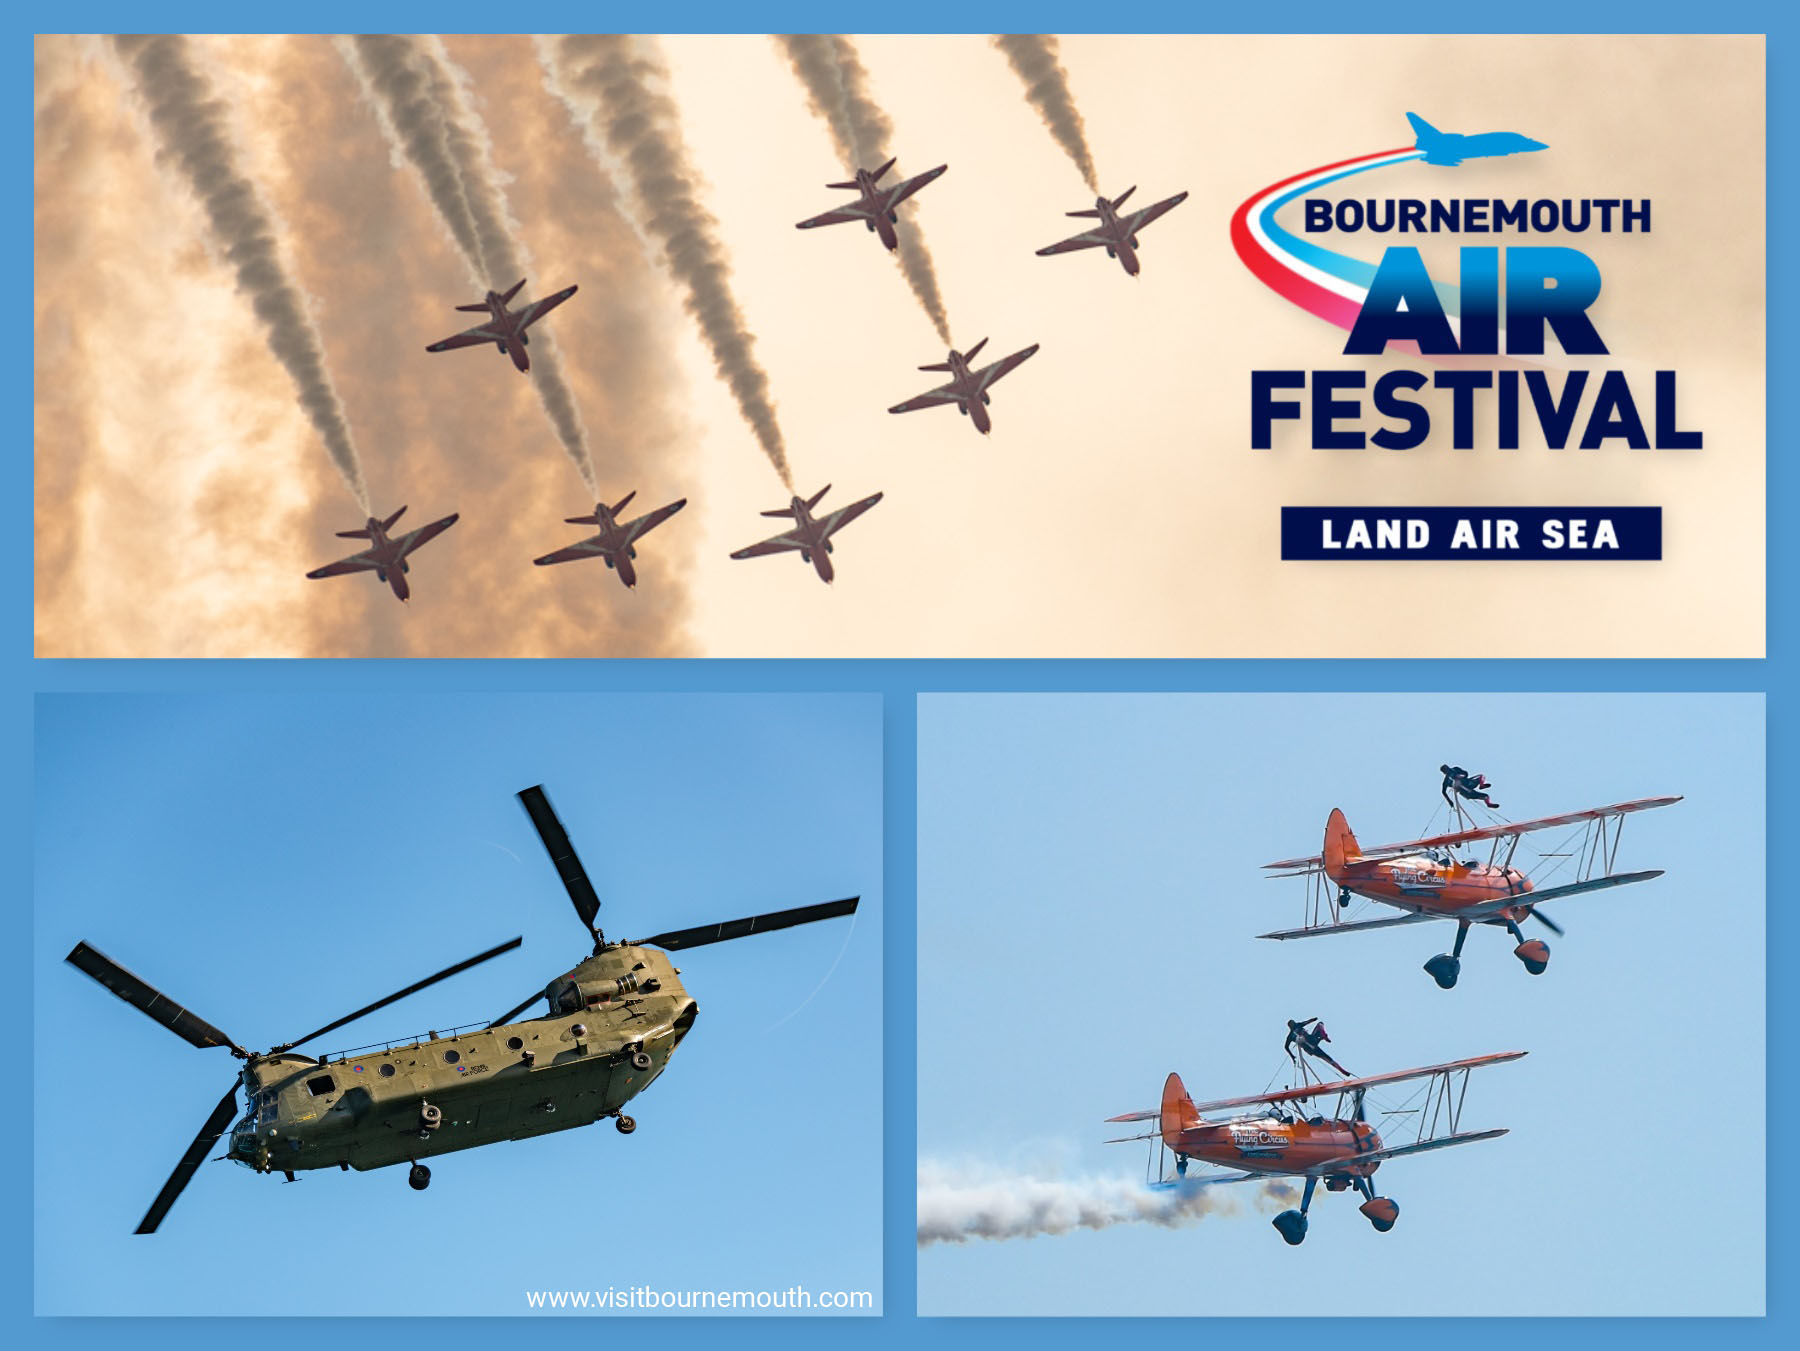 Bournemouth Air Festival 2021